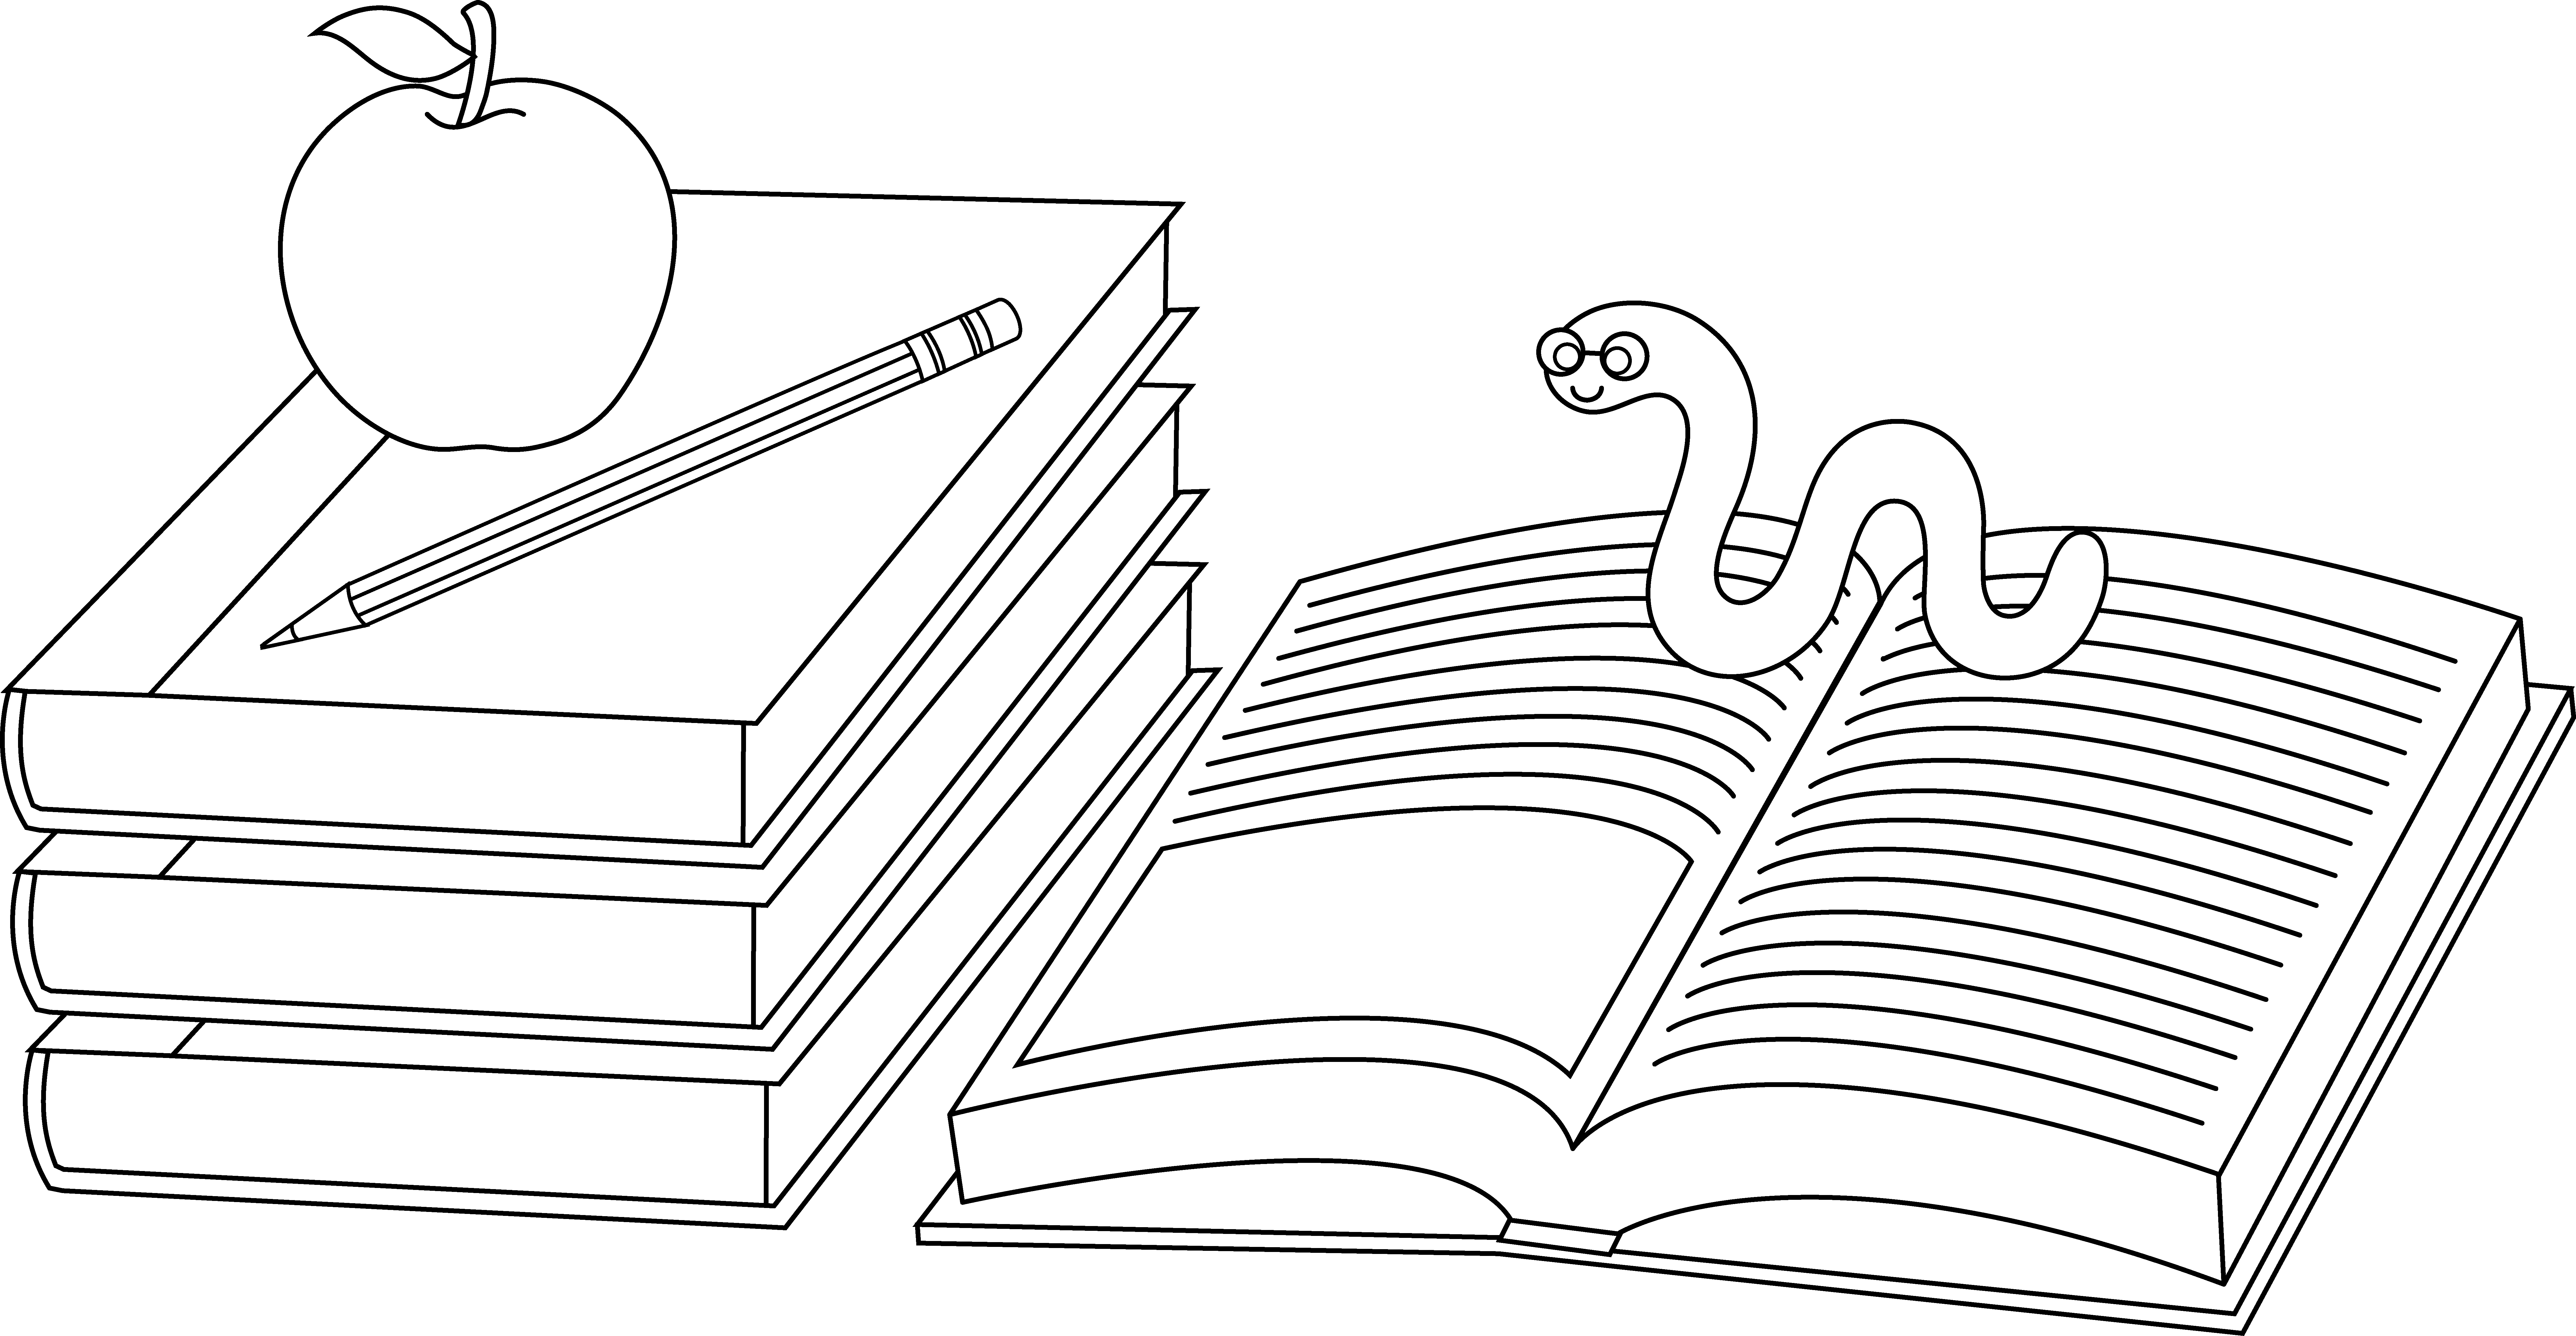 Worm clipart bookworm. Colorable school books and